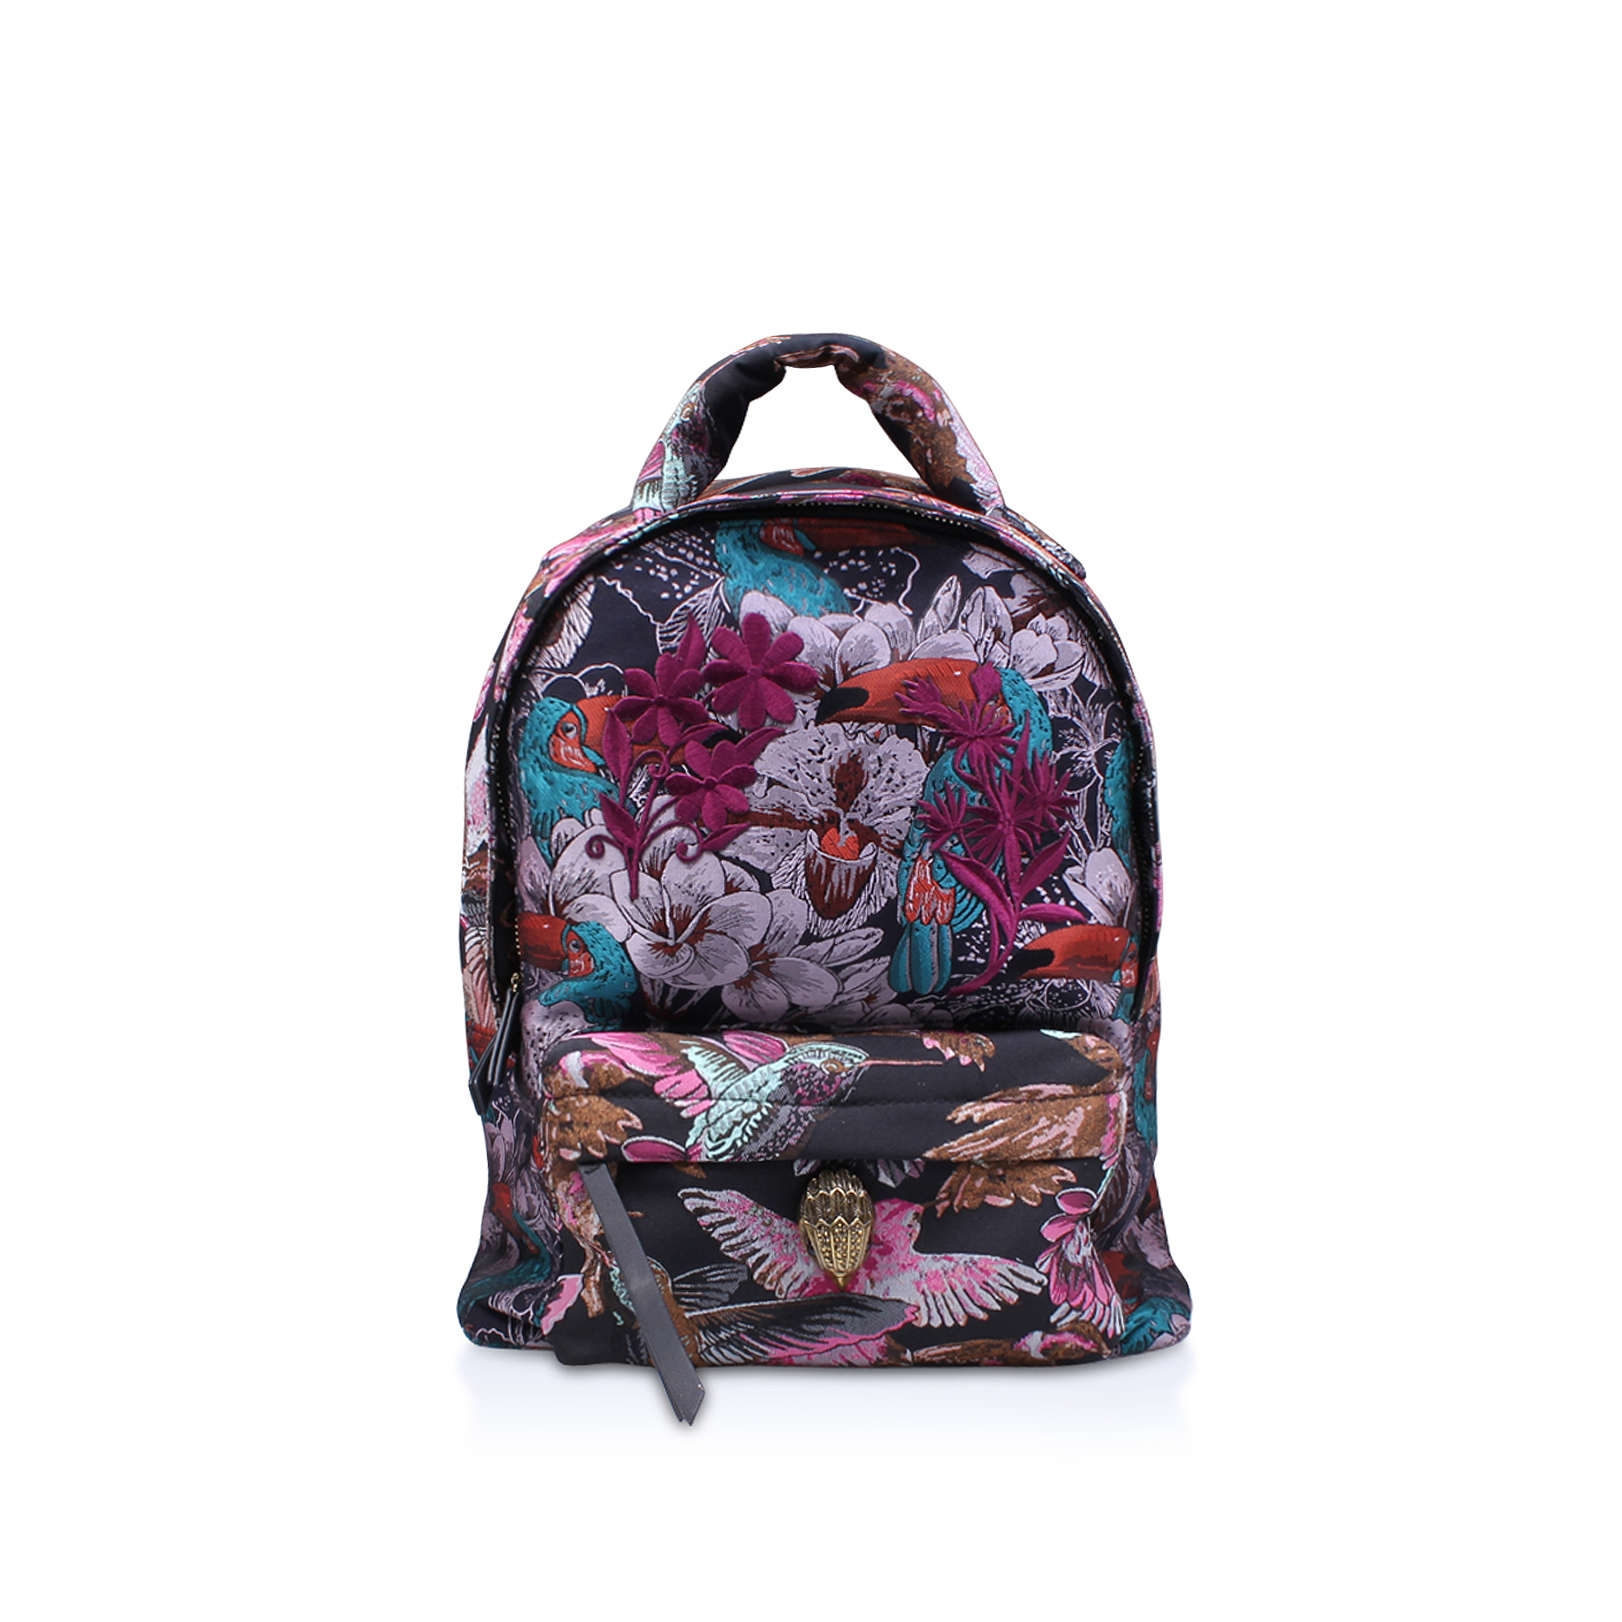 FABRIC CHANTAL BACKPACK